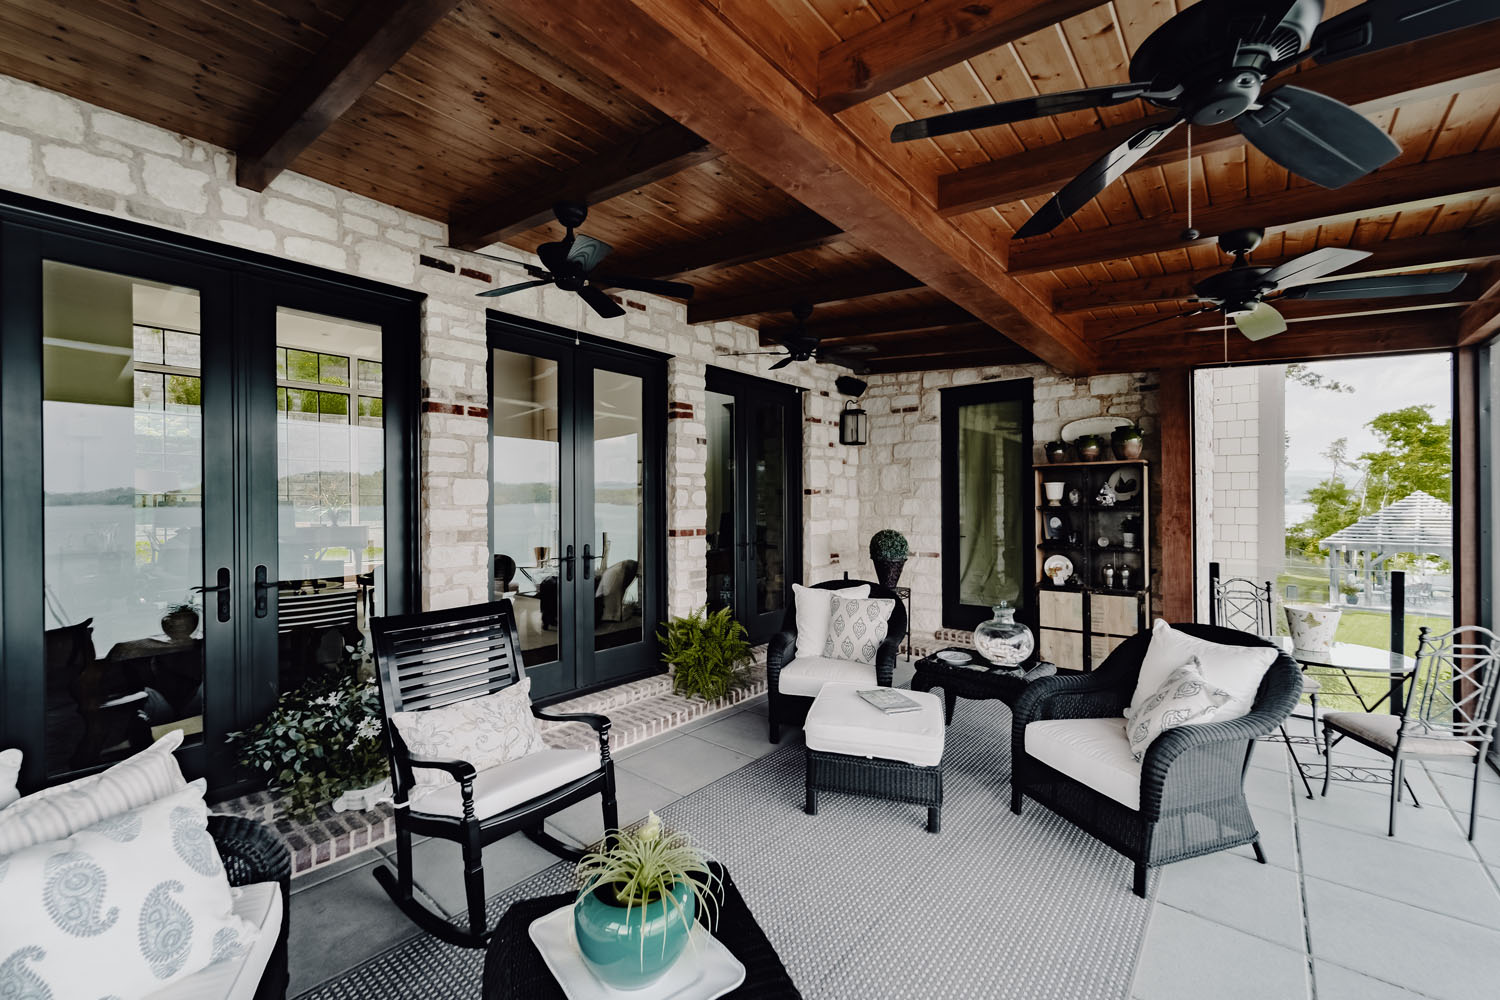 Custom outdoor patio with exposed wooden beams and ceiling by LA Construction custom home builders.